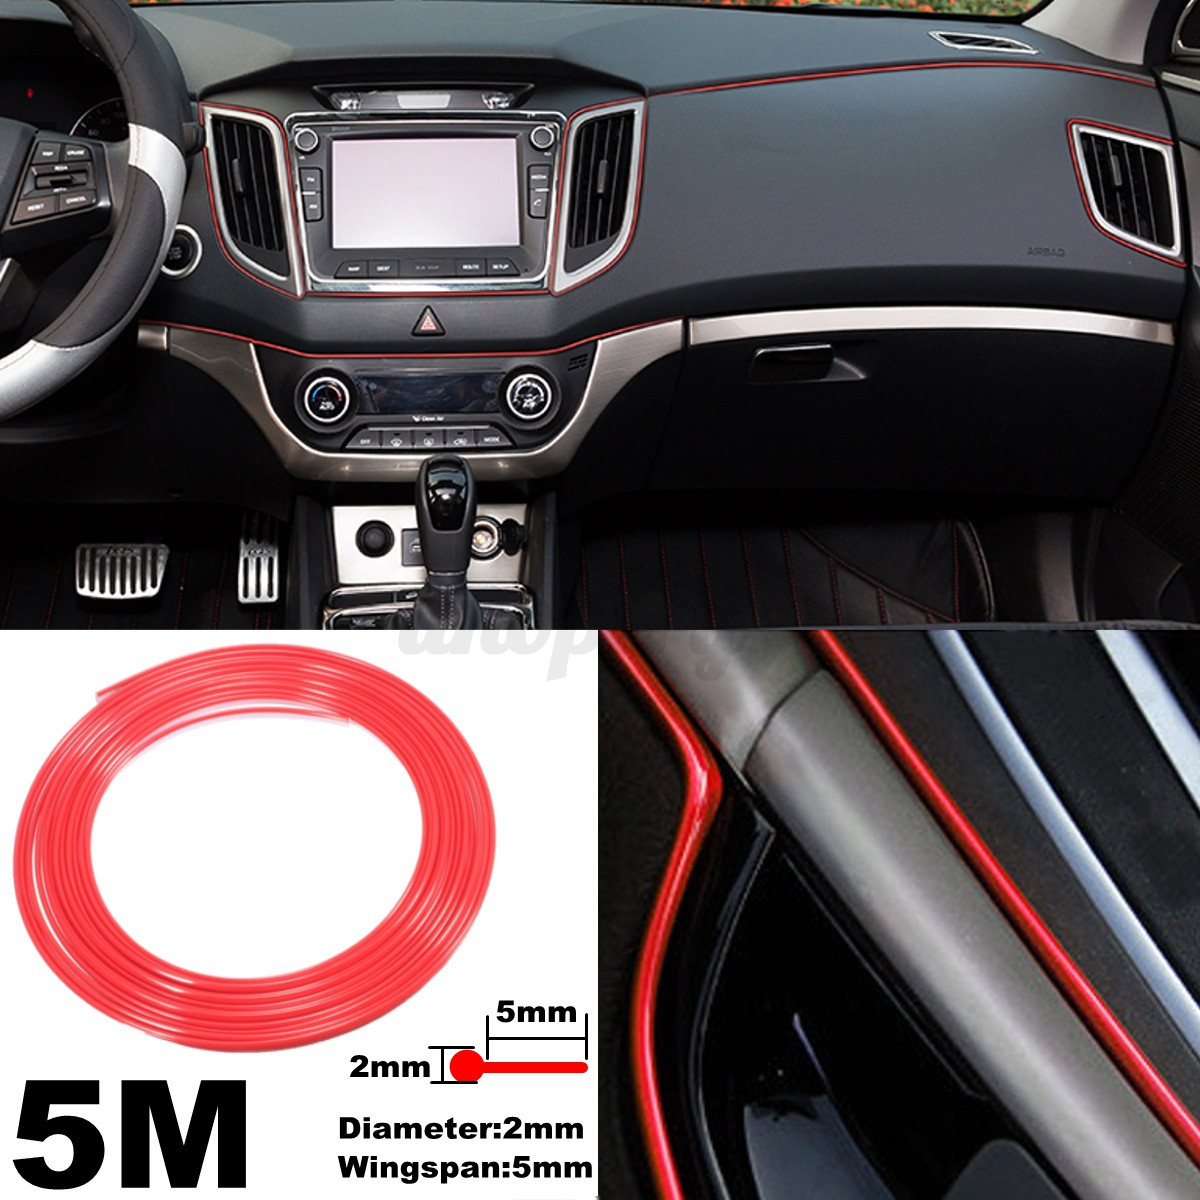 5m car interior edge moulding strip decorative red line door ornament trim strip ebay. Black Bedroom Furniture Sets. Home Design Ideas